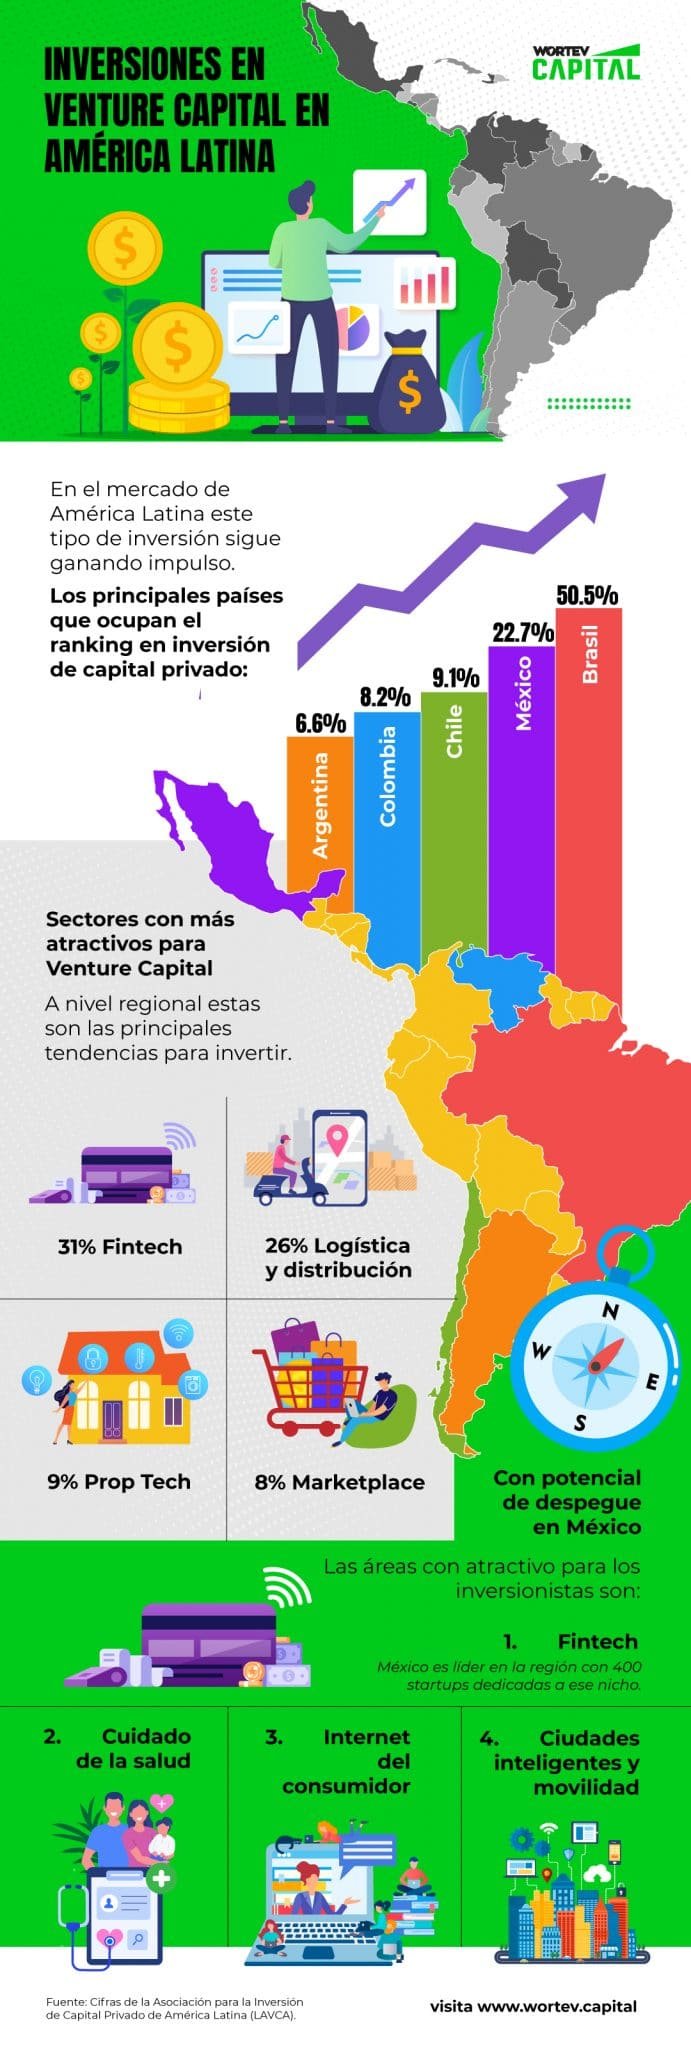 inversion-en-venture-capital-en-america-latina